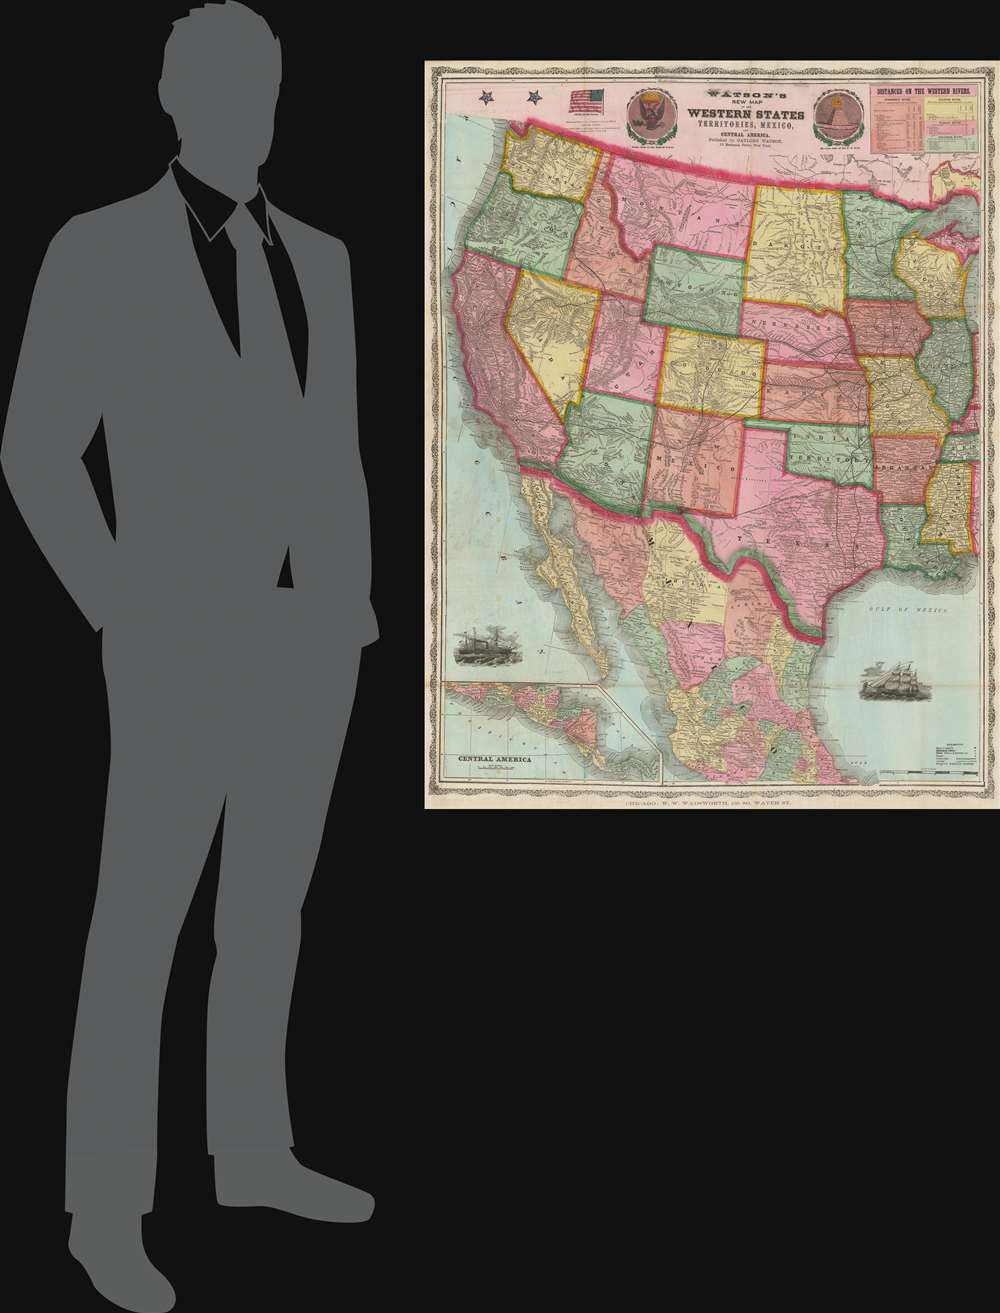 Watson's New Map of the Western States Territories, Mexico and Central America. - Alternate View 1